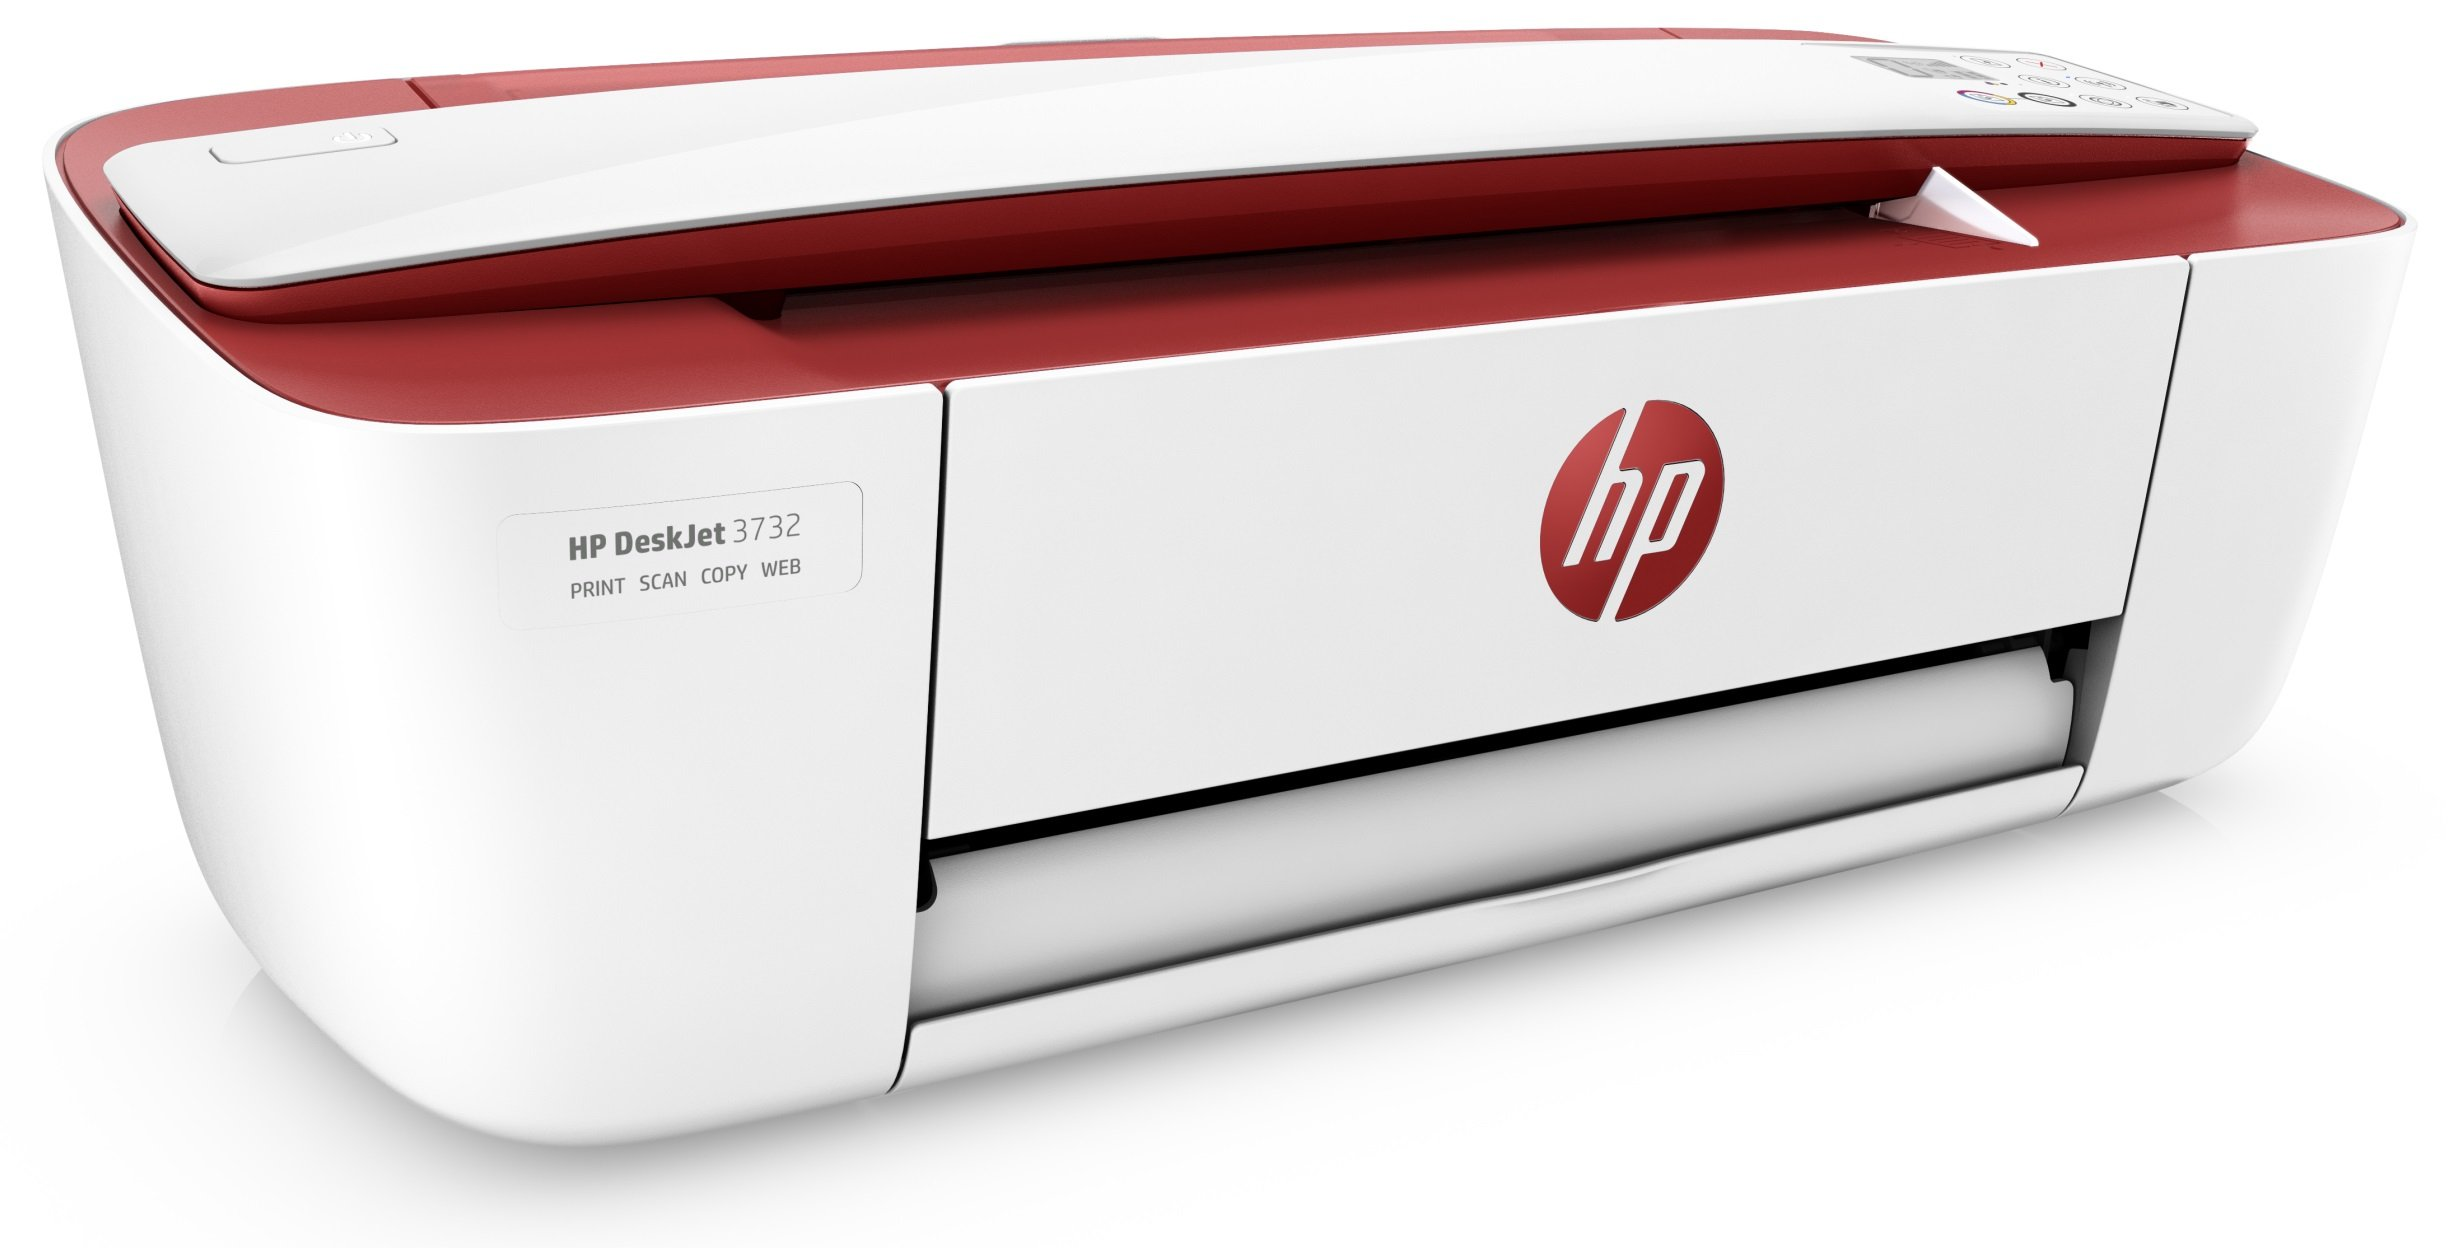 HP Deskjet 3732 Ink Cartridges